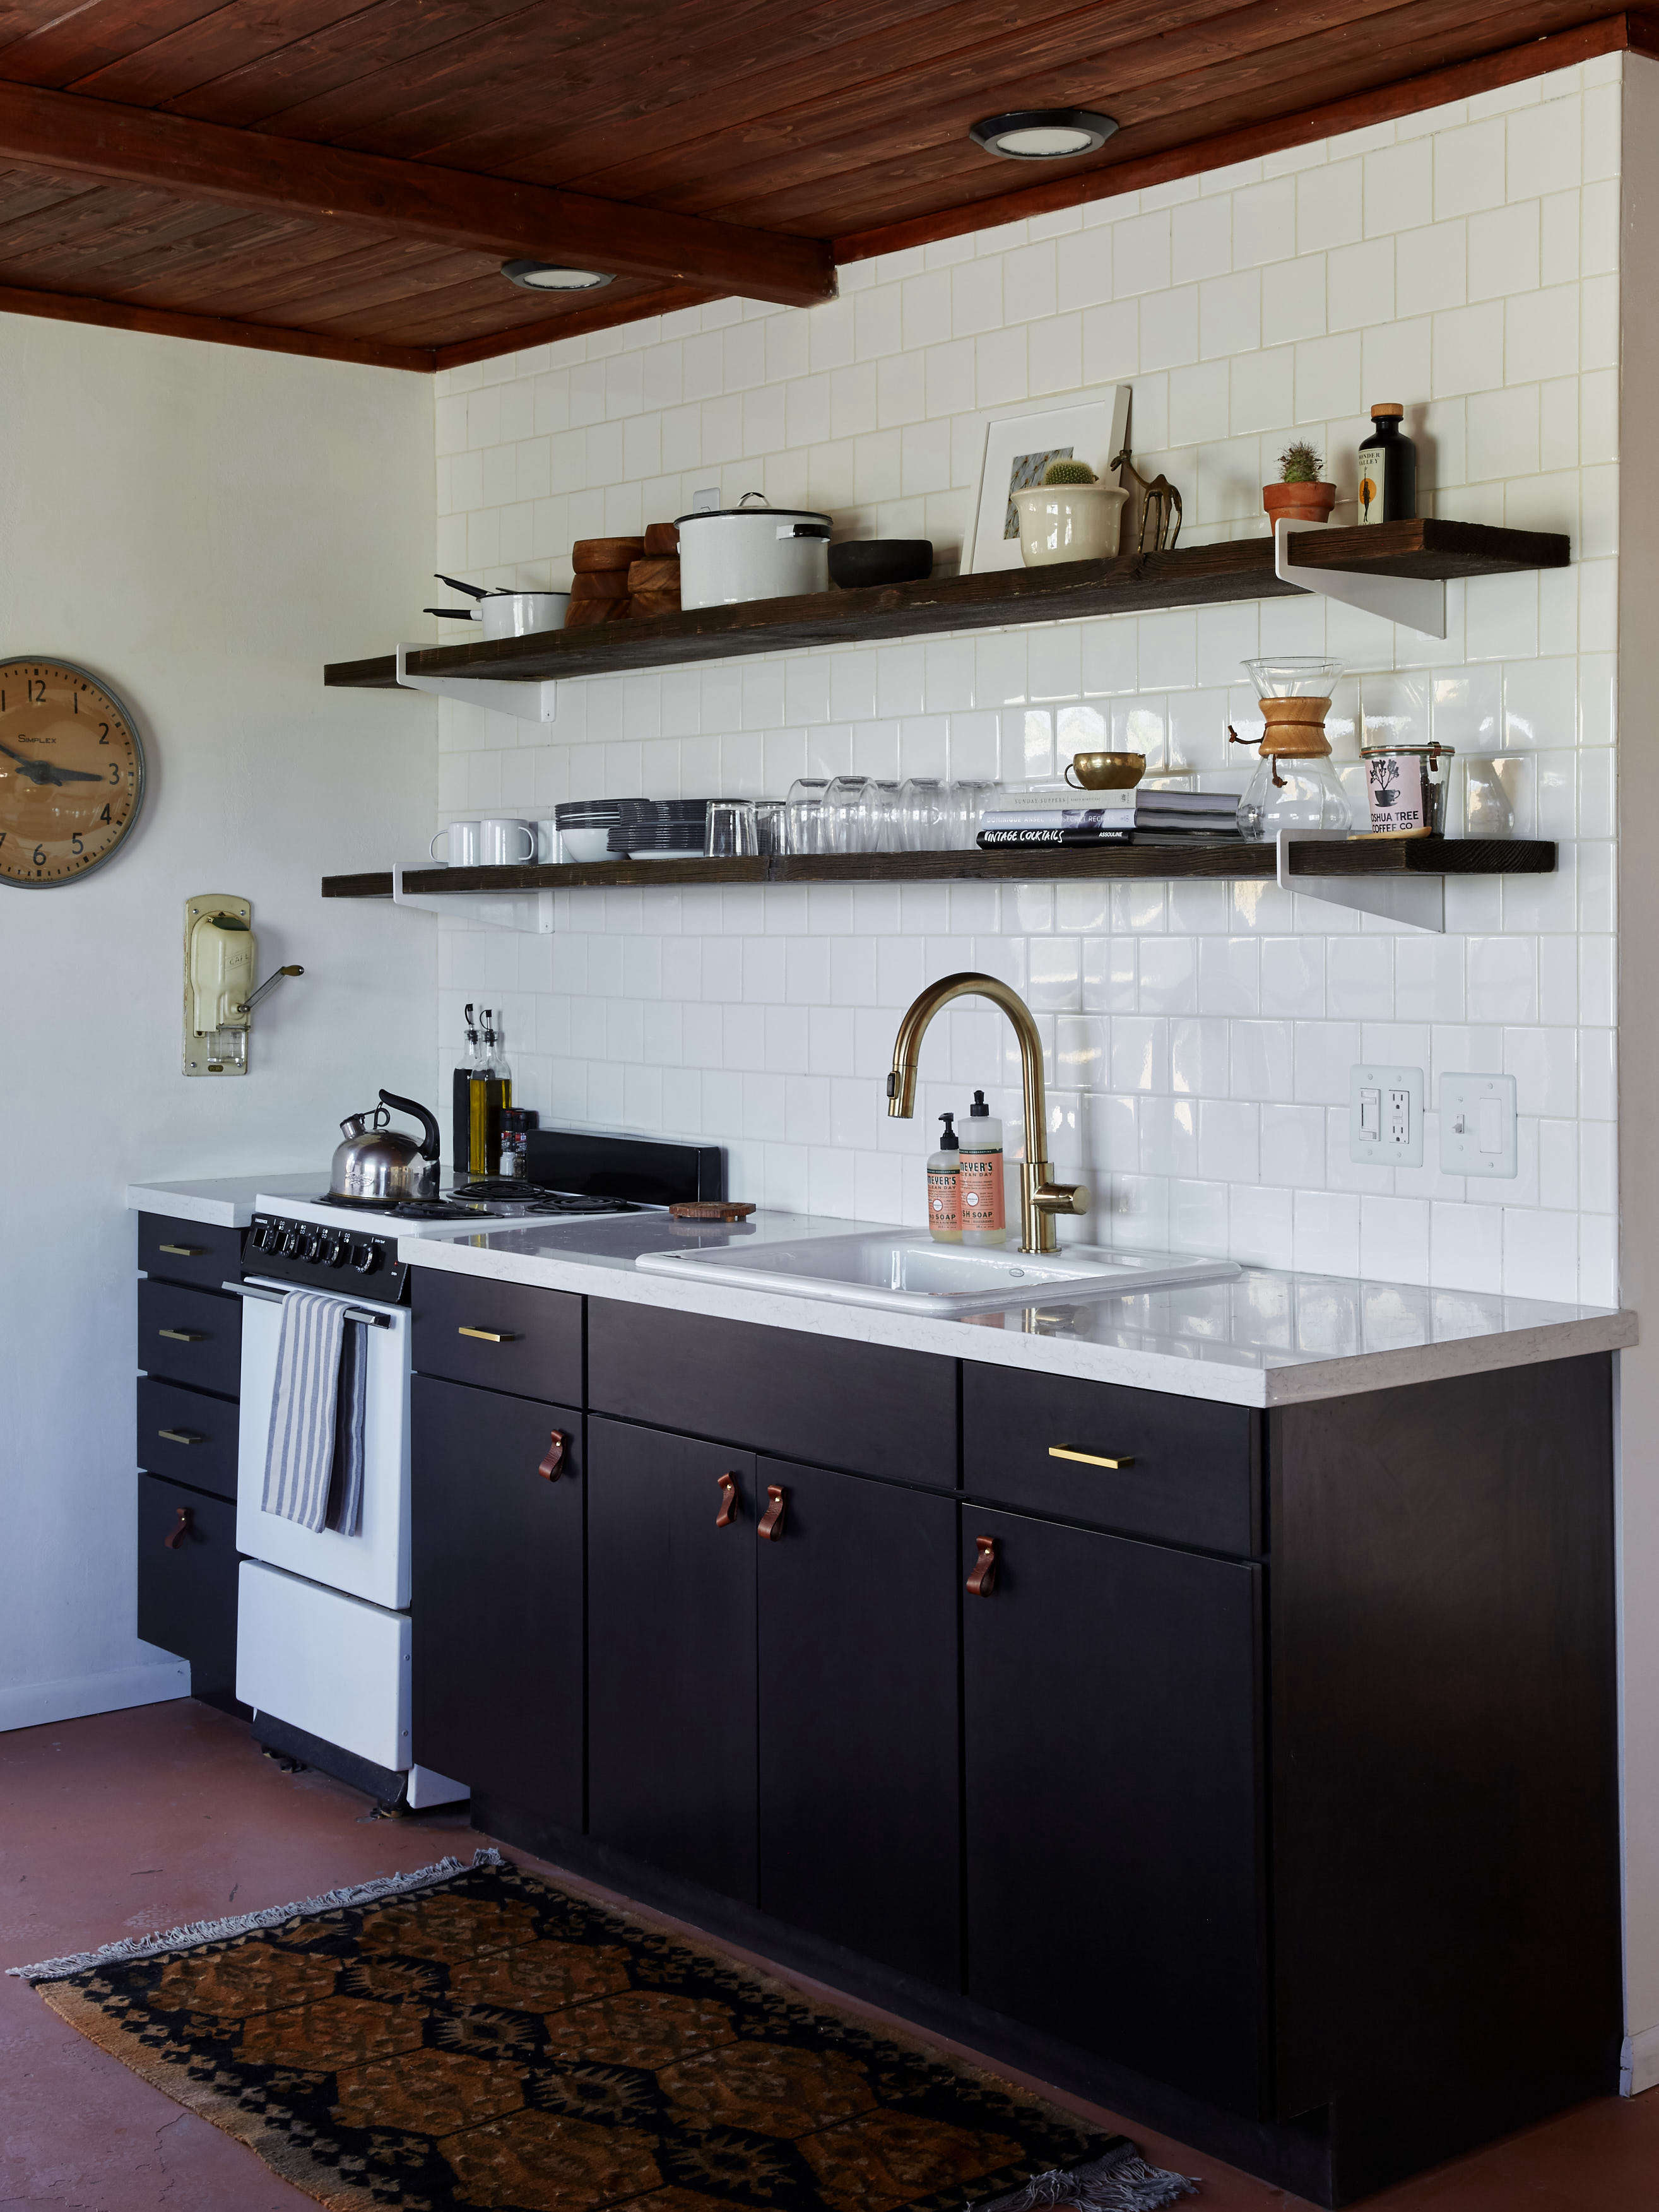 Kitchen Of The Week A Diy Ikea Country Kitchen For Two: 13 Favorite Cost-Conscious Kitchen Remodels From The